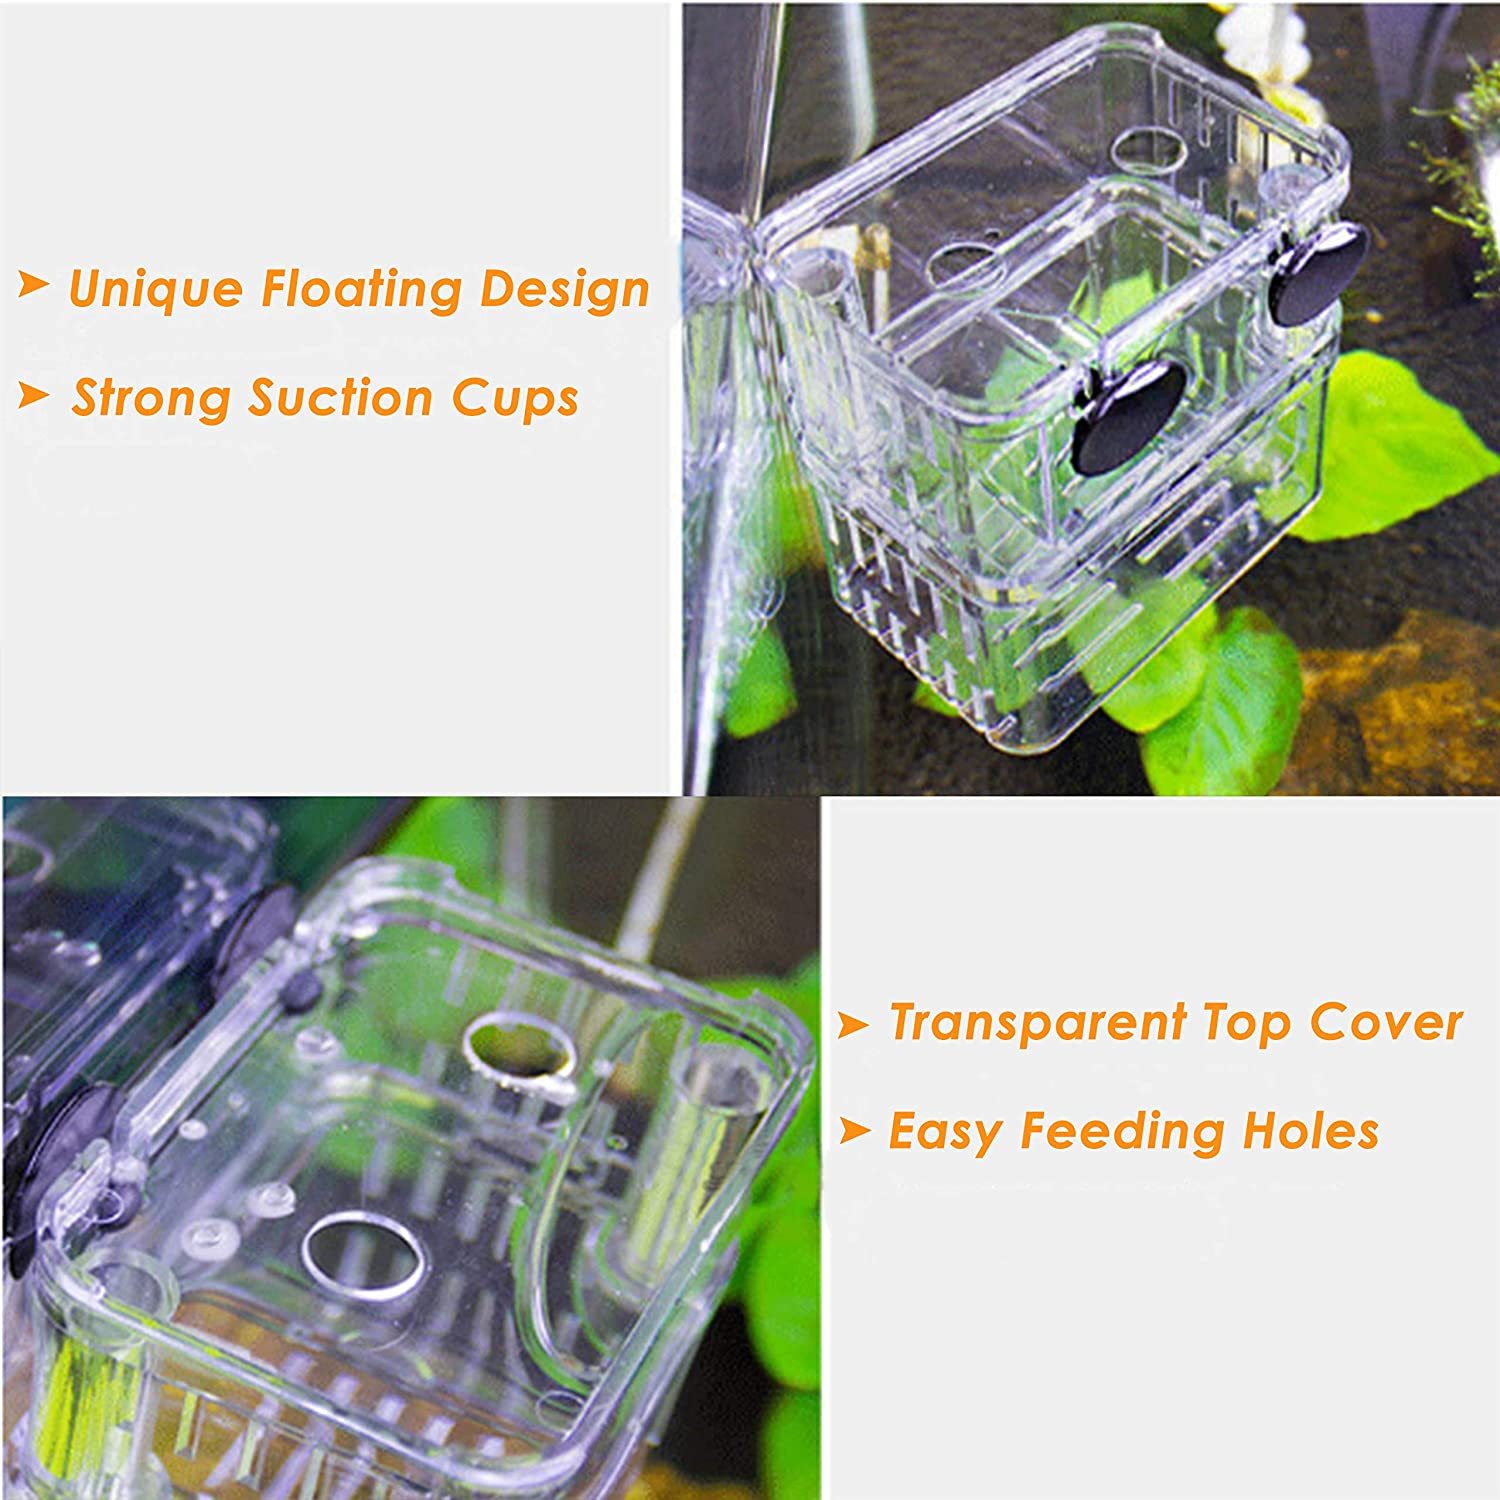 Tiberham Fish Breeding Box Acrylic Floating Fish Hatchery Isolation Box Aquarium Tank Fish Parenting Container Divider with Suction Cups Double Layer Fry Hatching Incubator Breeding Rearing Trap